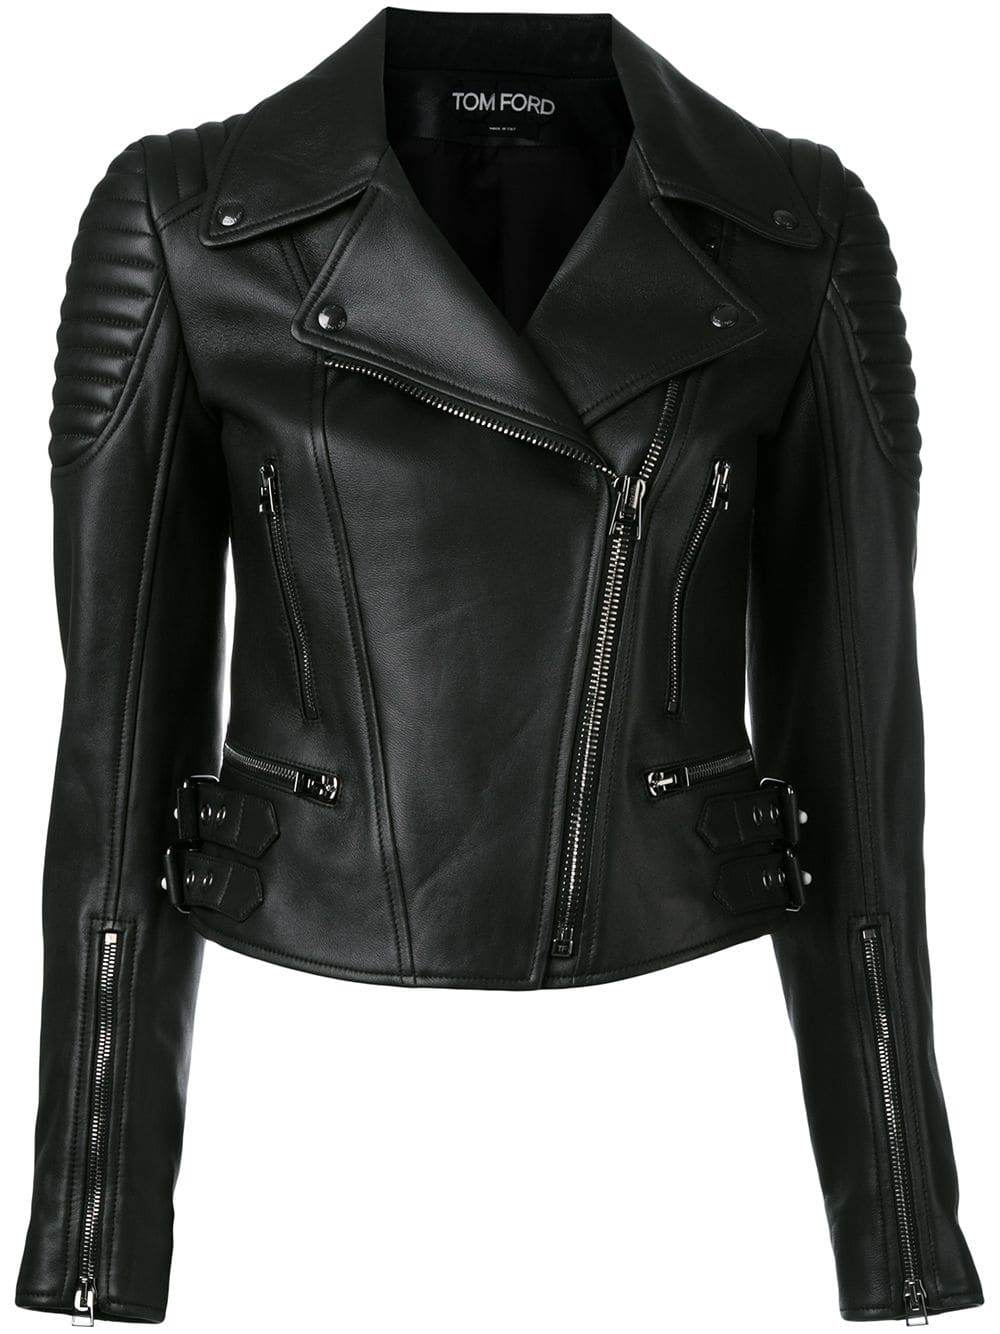 84f5466304dc Tom Ford zipped biker jacket - Black in 2019 | Products | Womens ...